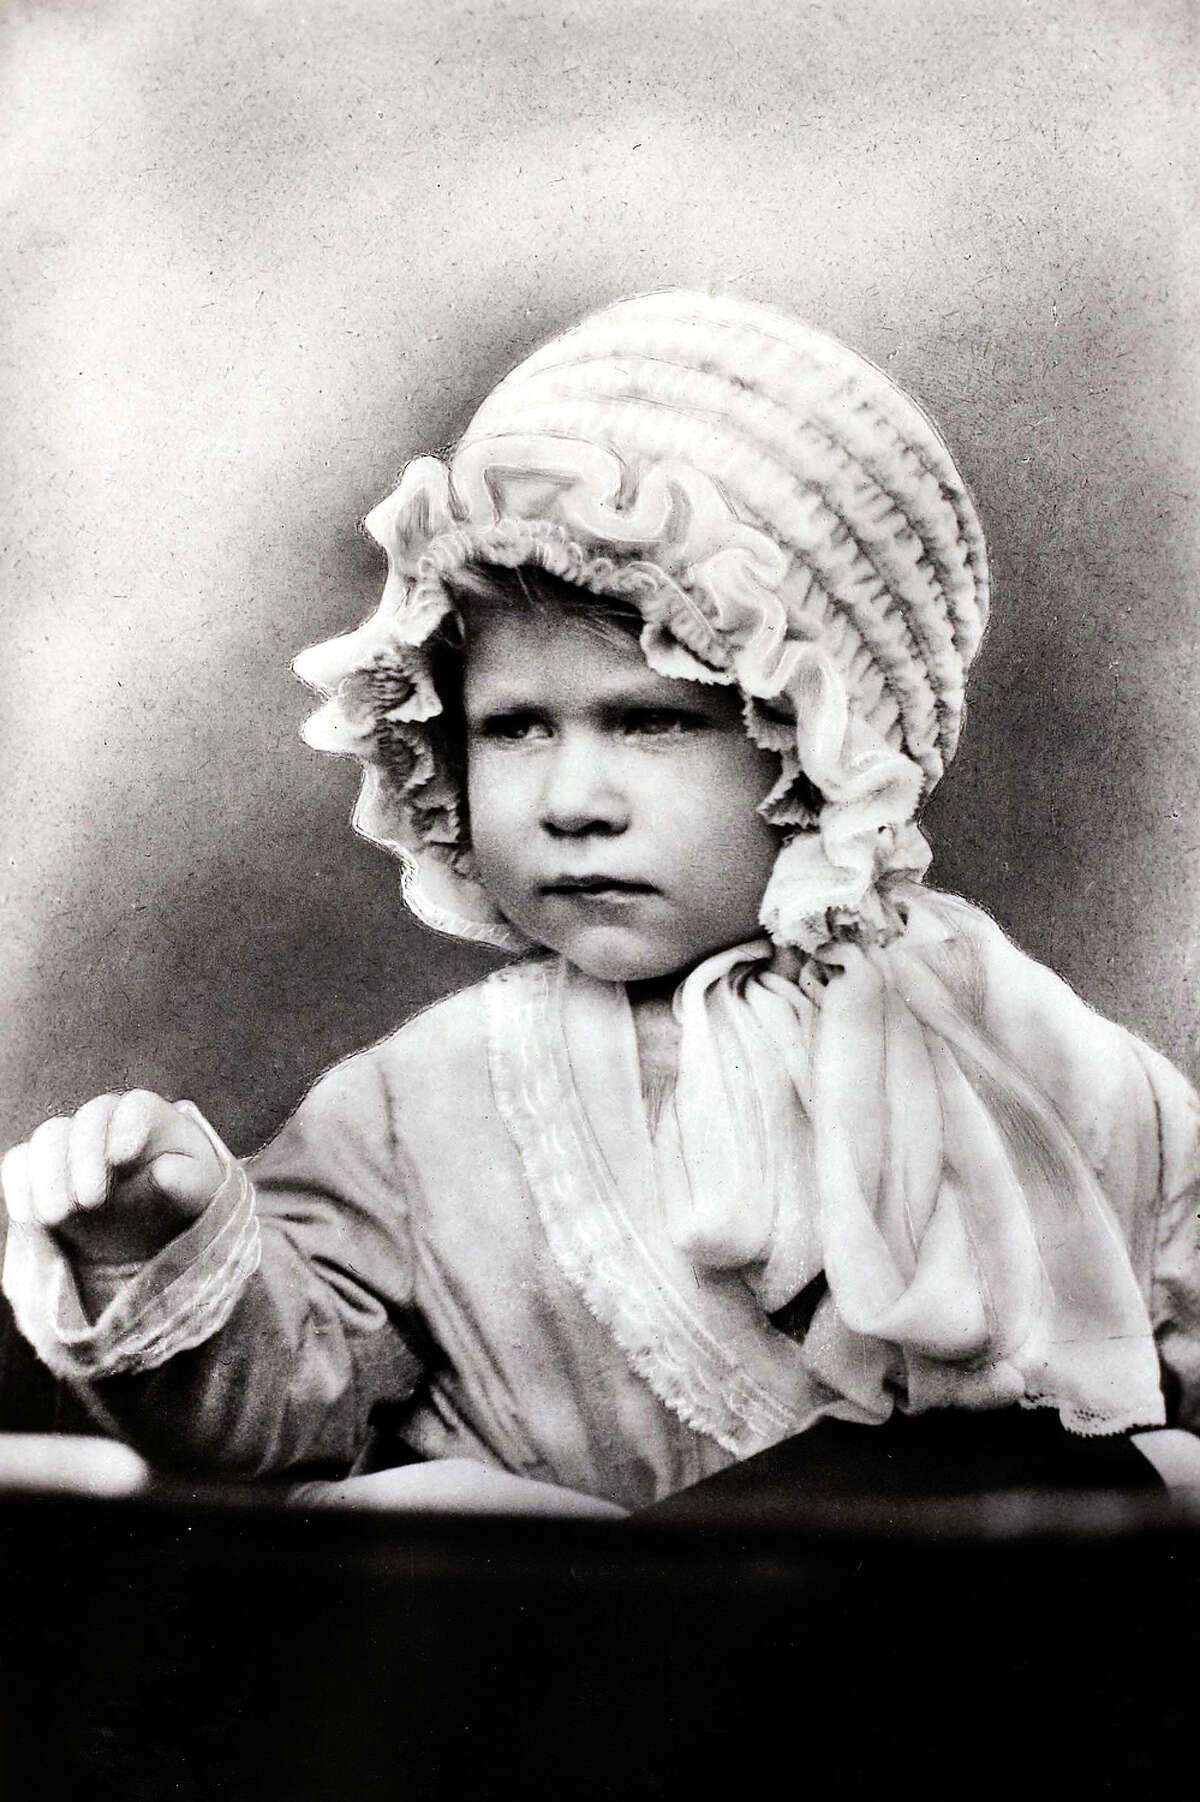 British Royalty, circa 1927, HRH Princess Elizabeth wearing a cute bonnet, the daughter of The Duke and Duchess of York.